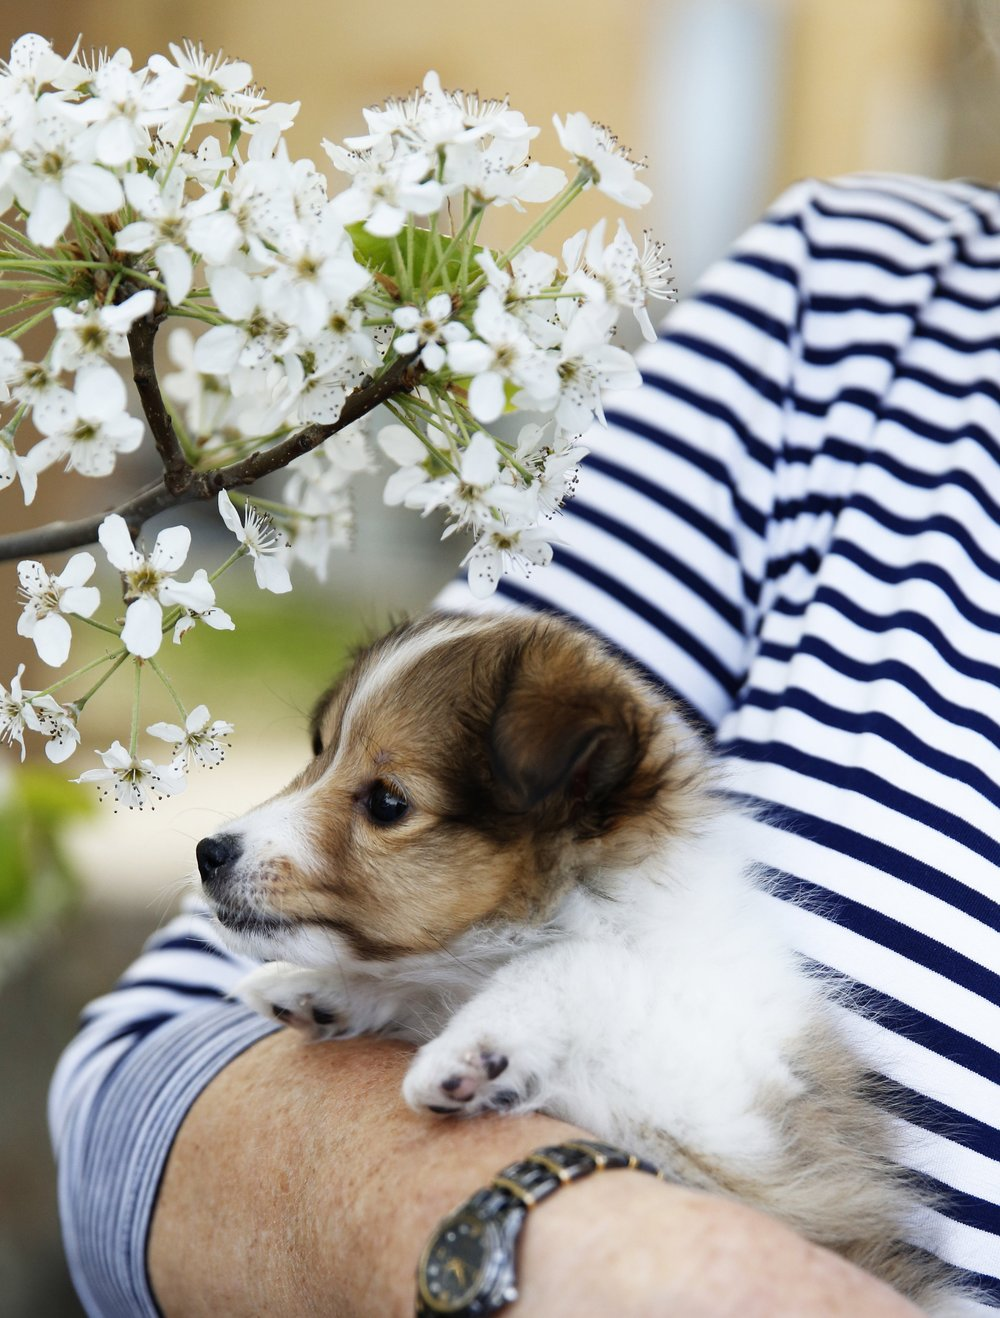 This year I purchased a feisty little sheltie puppy so the new hobby will be dog training. -